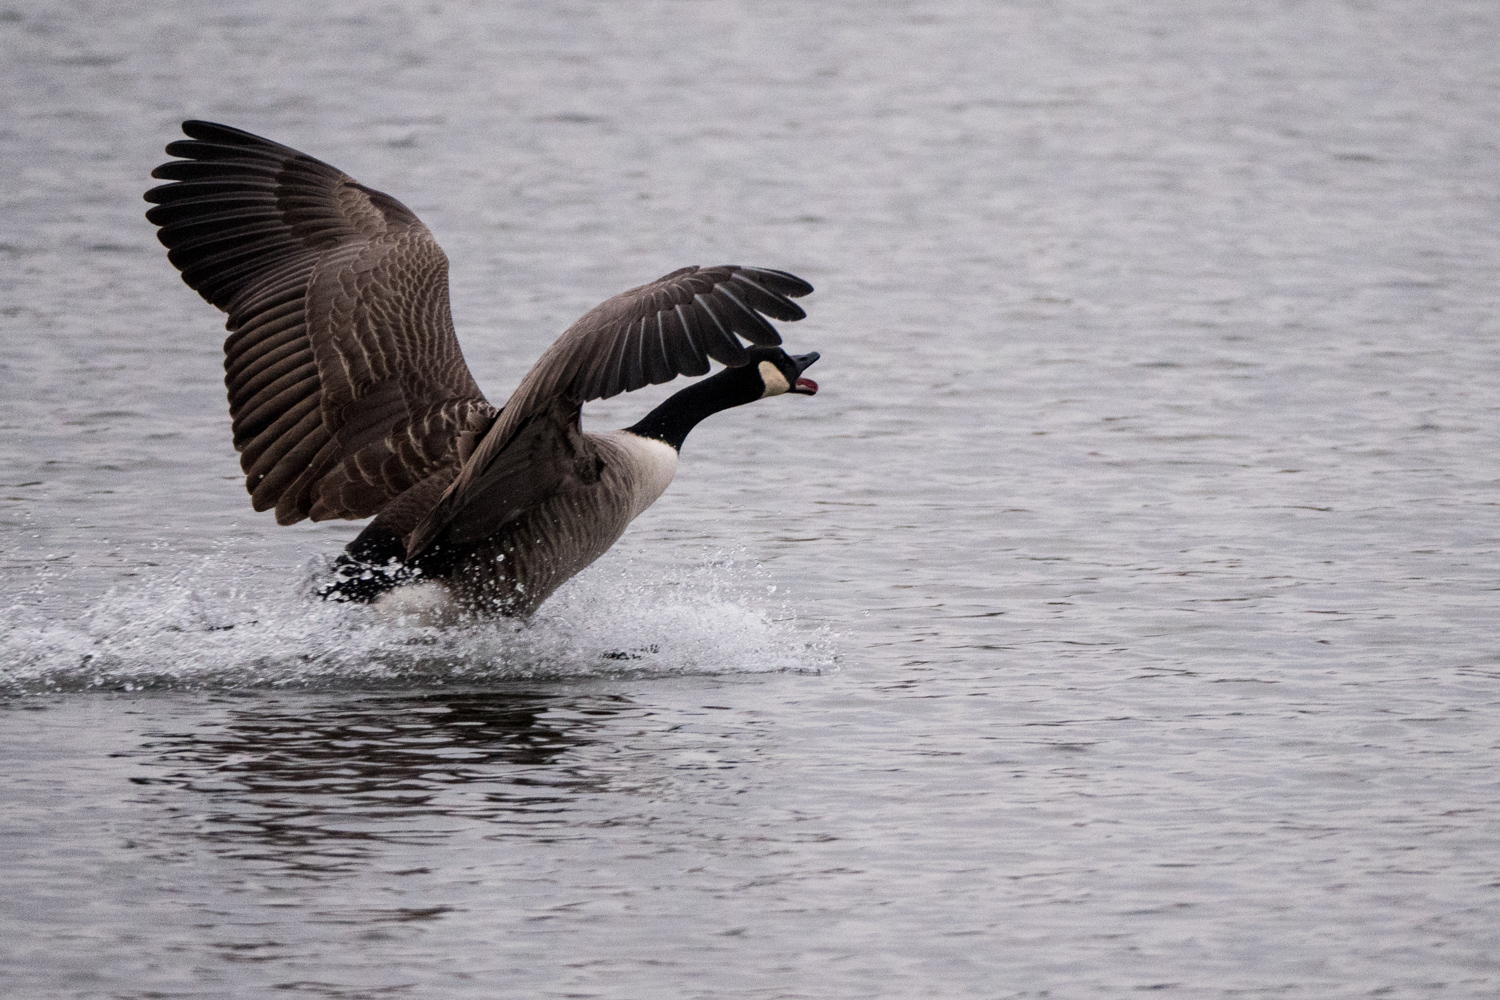 The light has been uniformly awful since I bought my camera but, even so, I was able to track this Canada Goose taking flight. Roll on springtime....